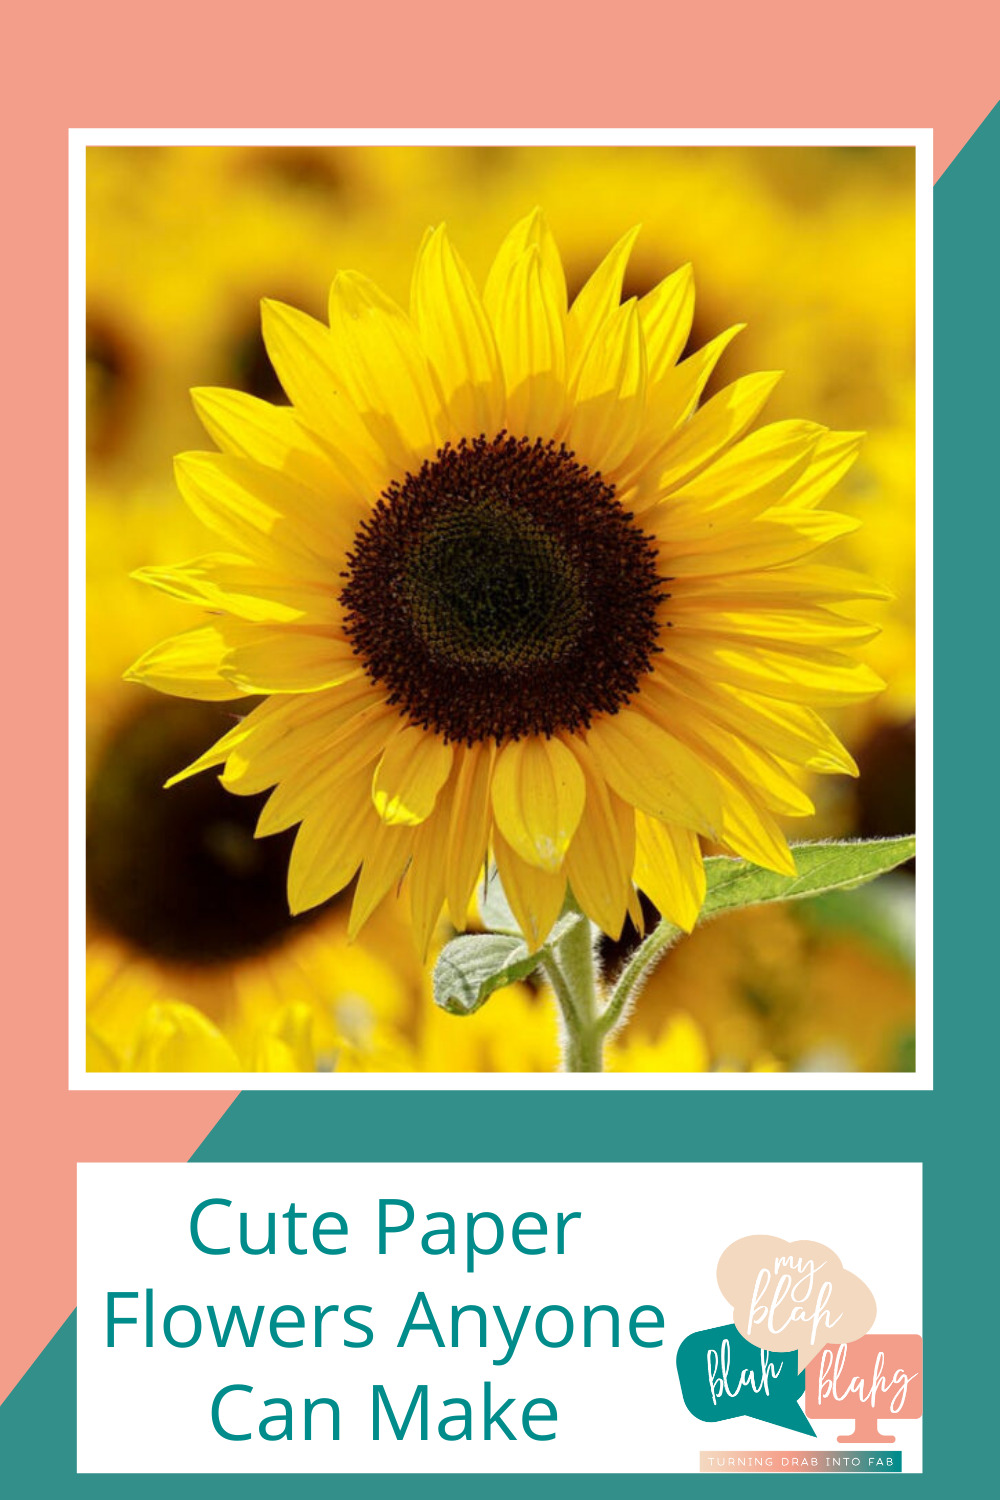 Myblahblahblahg.com has fun ideas for every season! Get ready for the warmer months with cheery florals and inspired projects! These DIY paper flowers are fun to make and beautiful to look at!